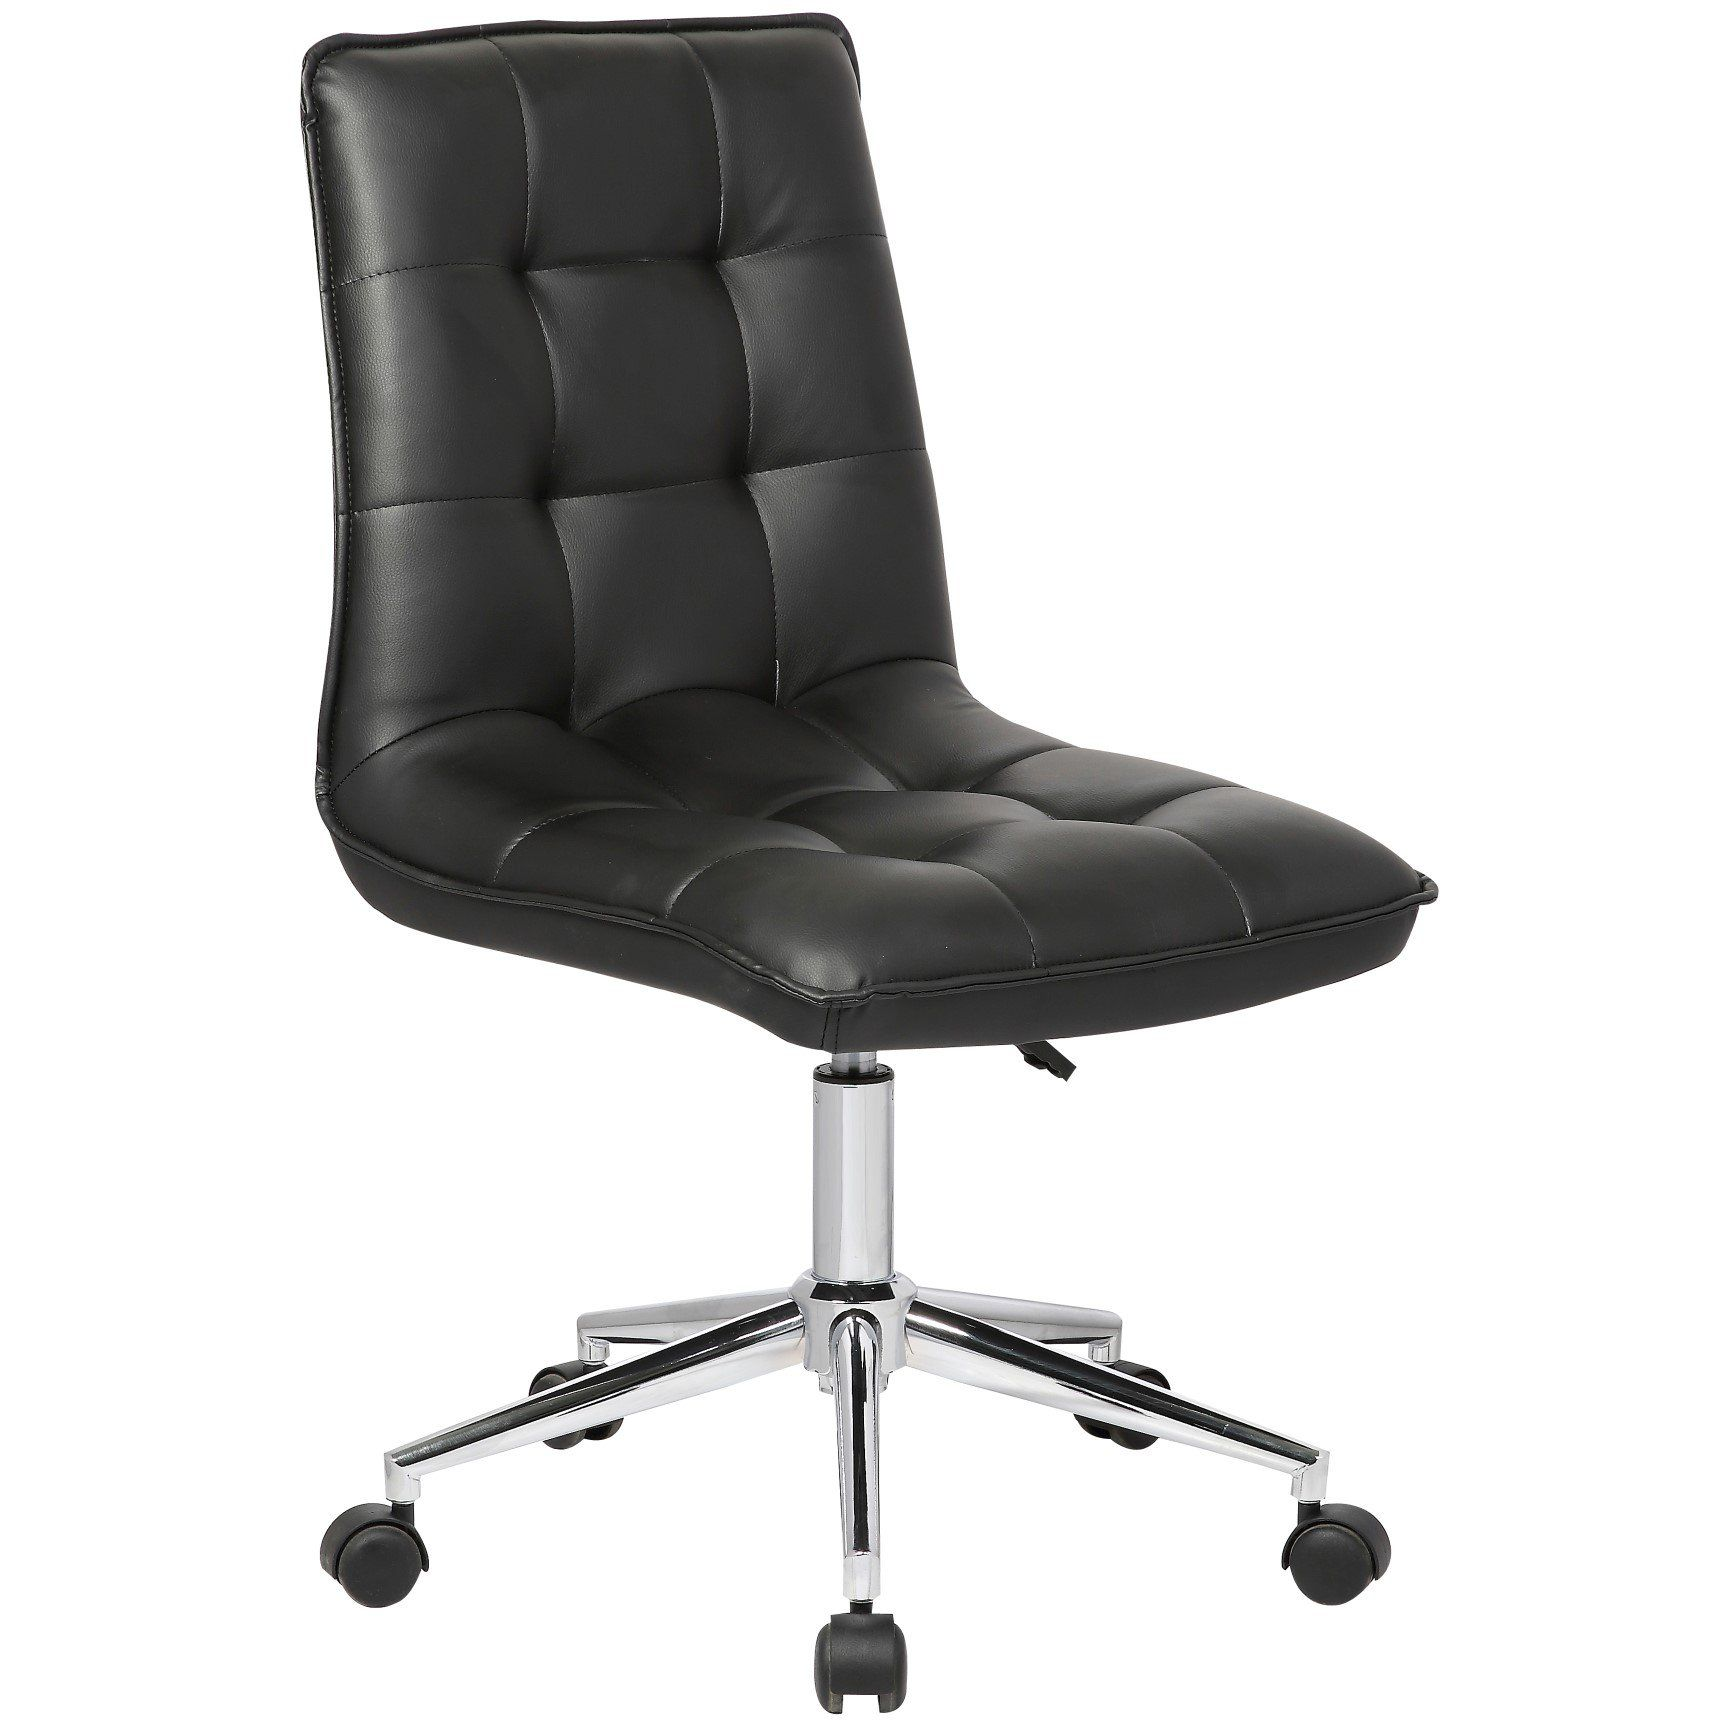 Porthos Home Leona Office Chair Unique Luxury Home Office Chairs Height Adjustable 360degree Swivel Eas Adjustable Office Chair Black Office Chair Office Chair